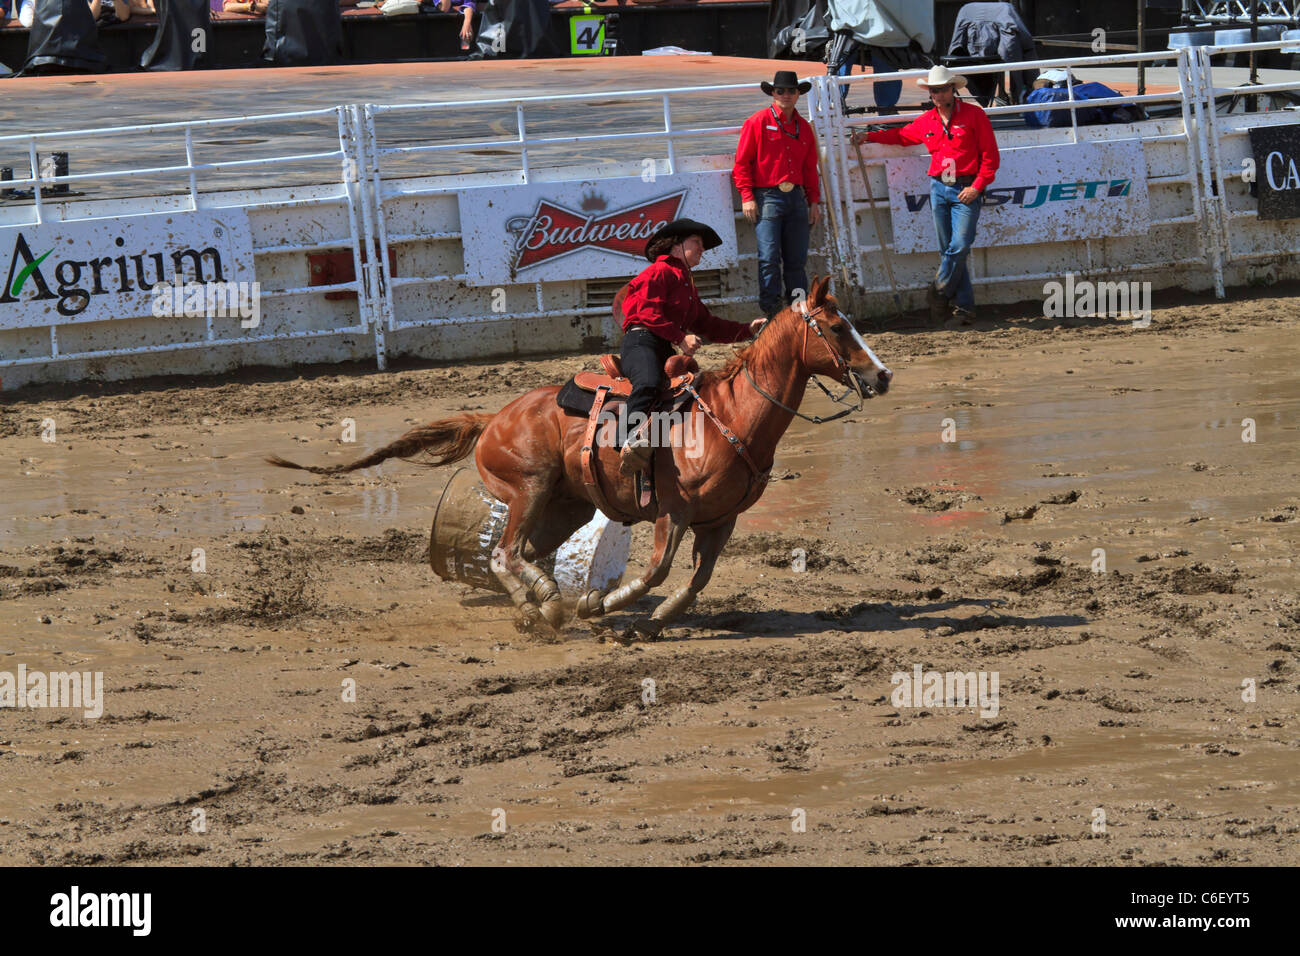 Barrel Racing at the Calgary Stampede. A competitor knocks over a barrel, adding a 5 second penalty to her time - Stock Image